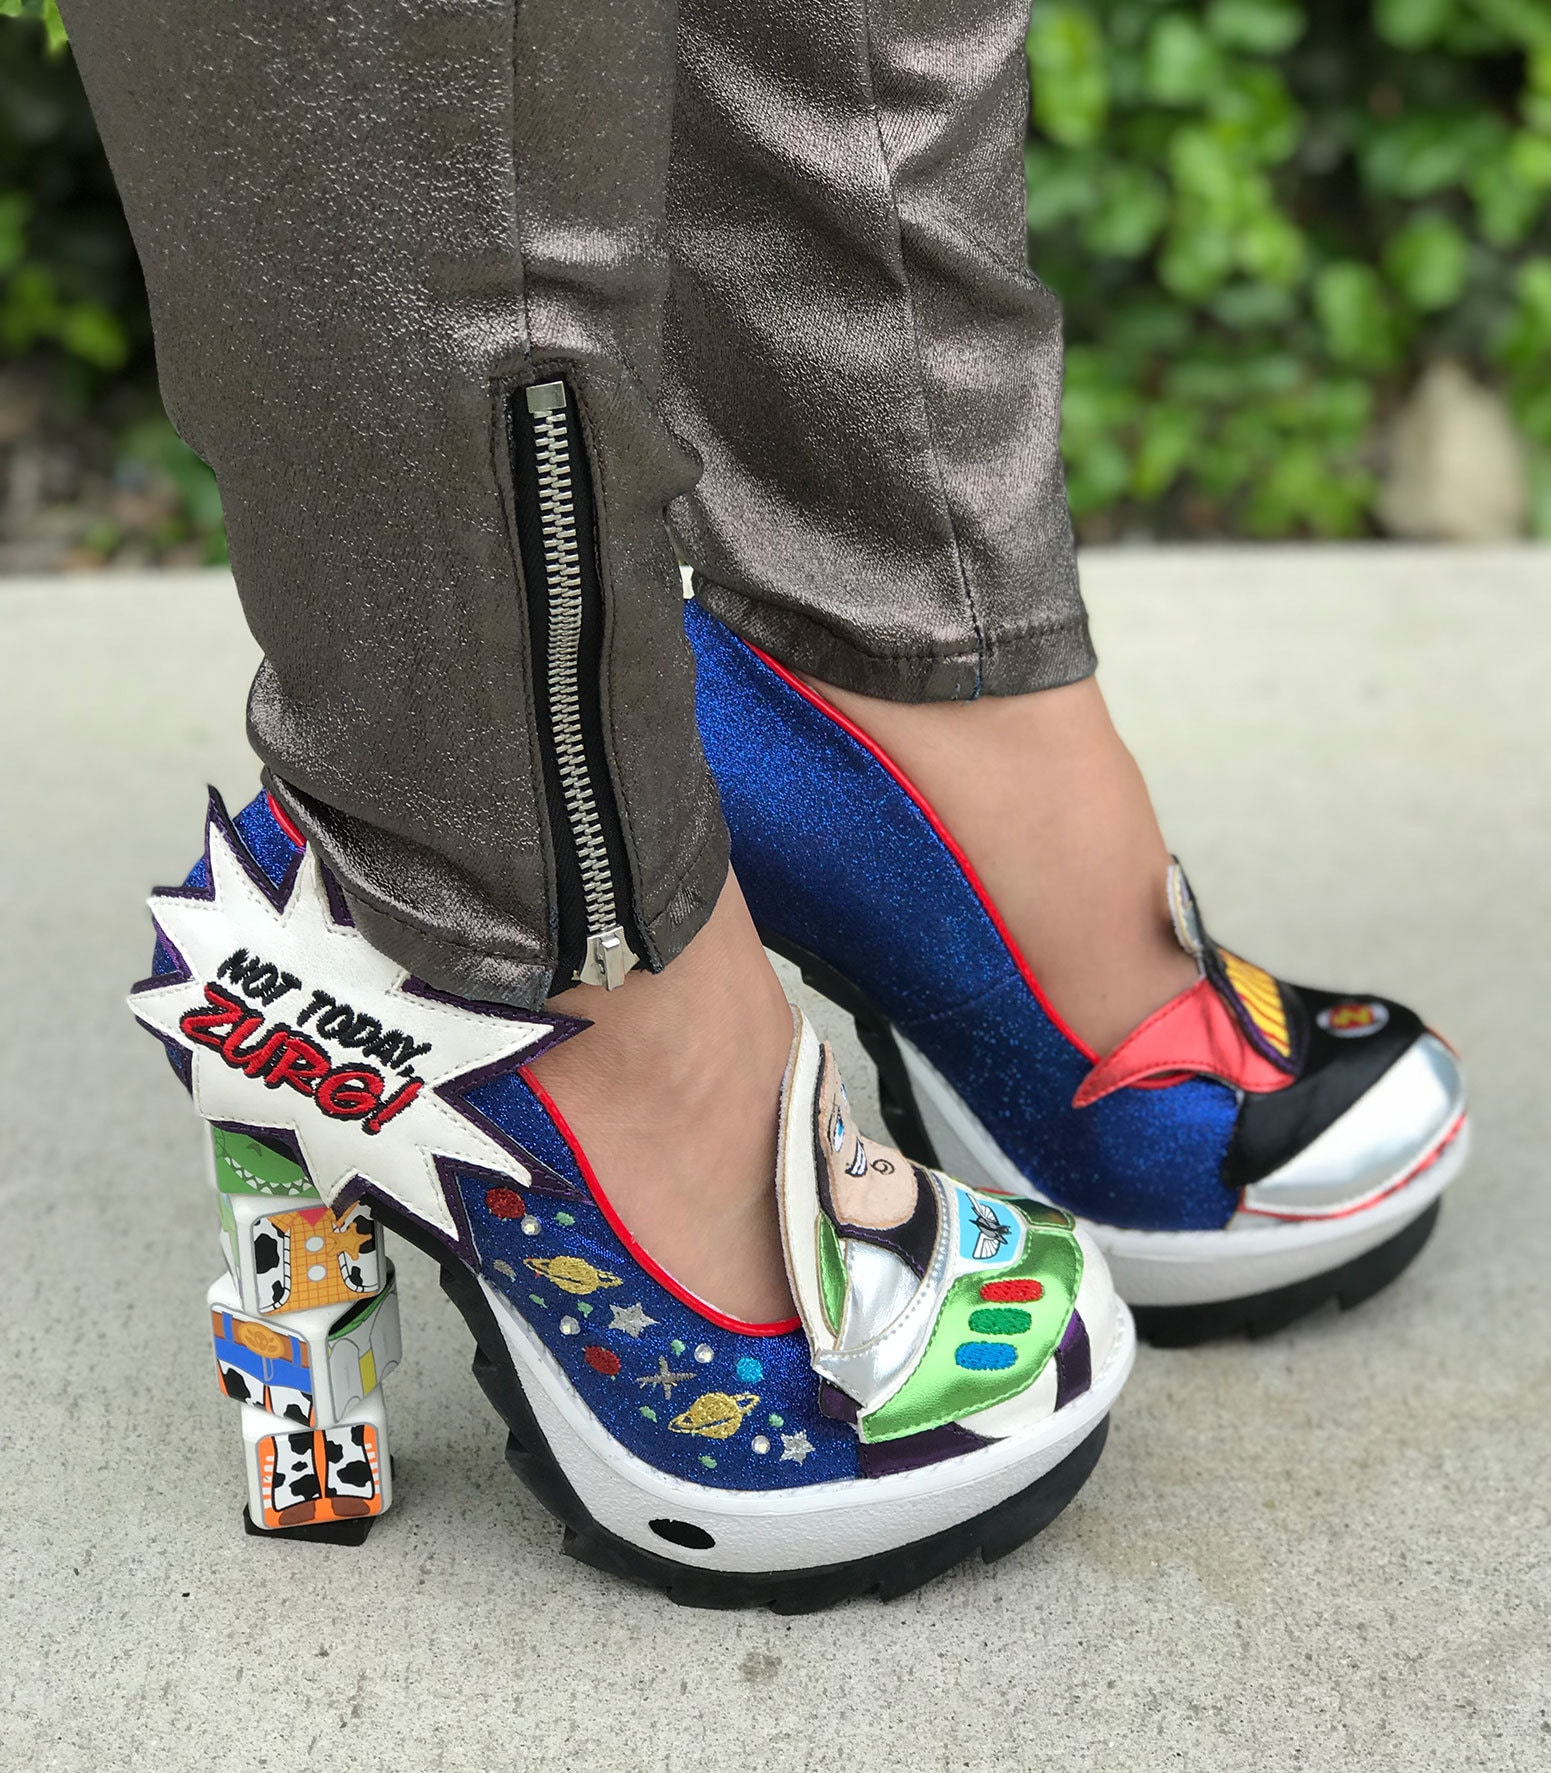 Shoes from The Toy Story Irregular Choice Collection